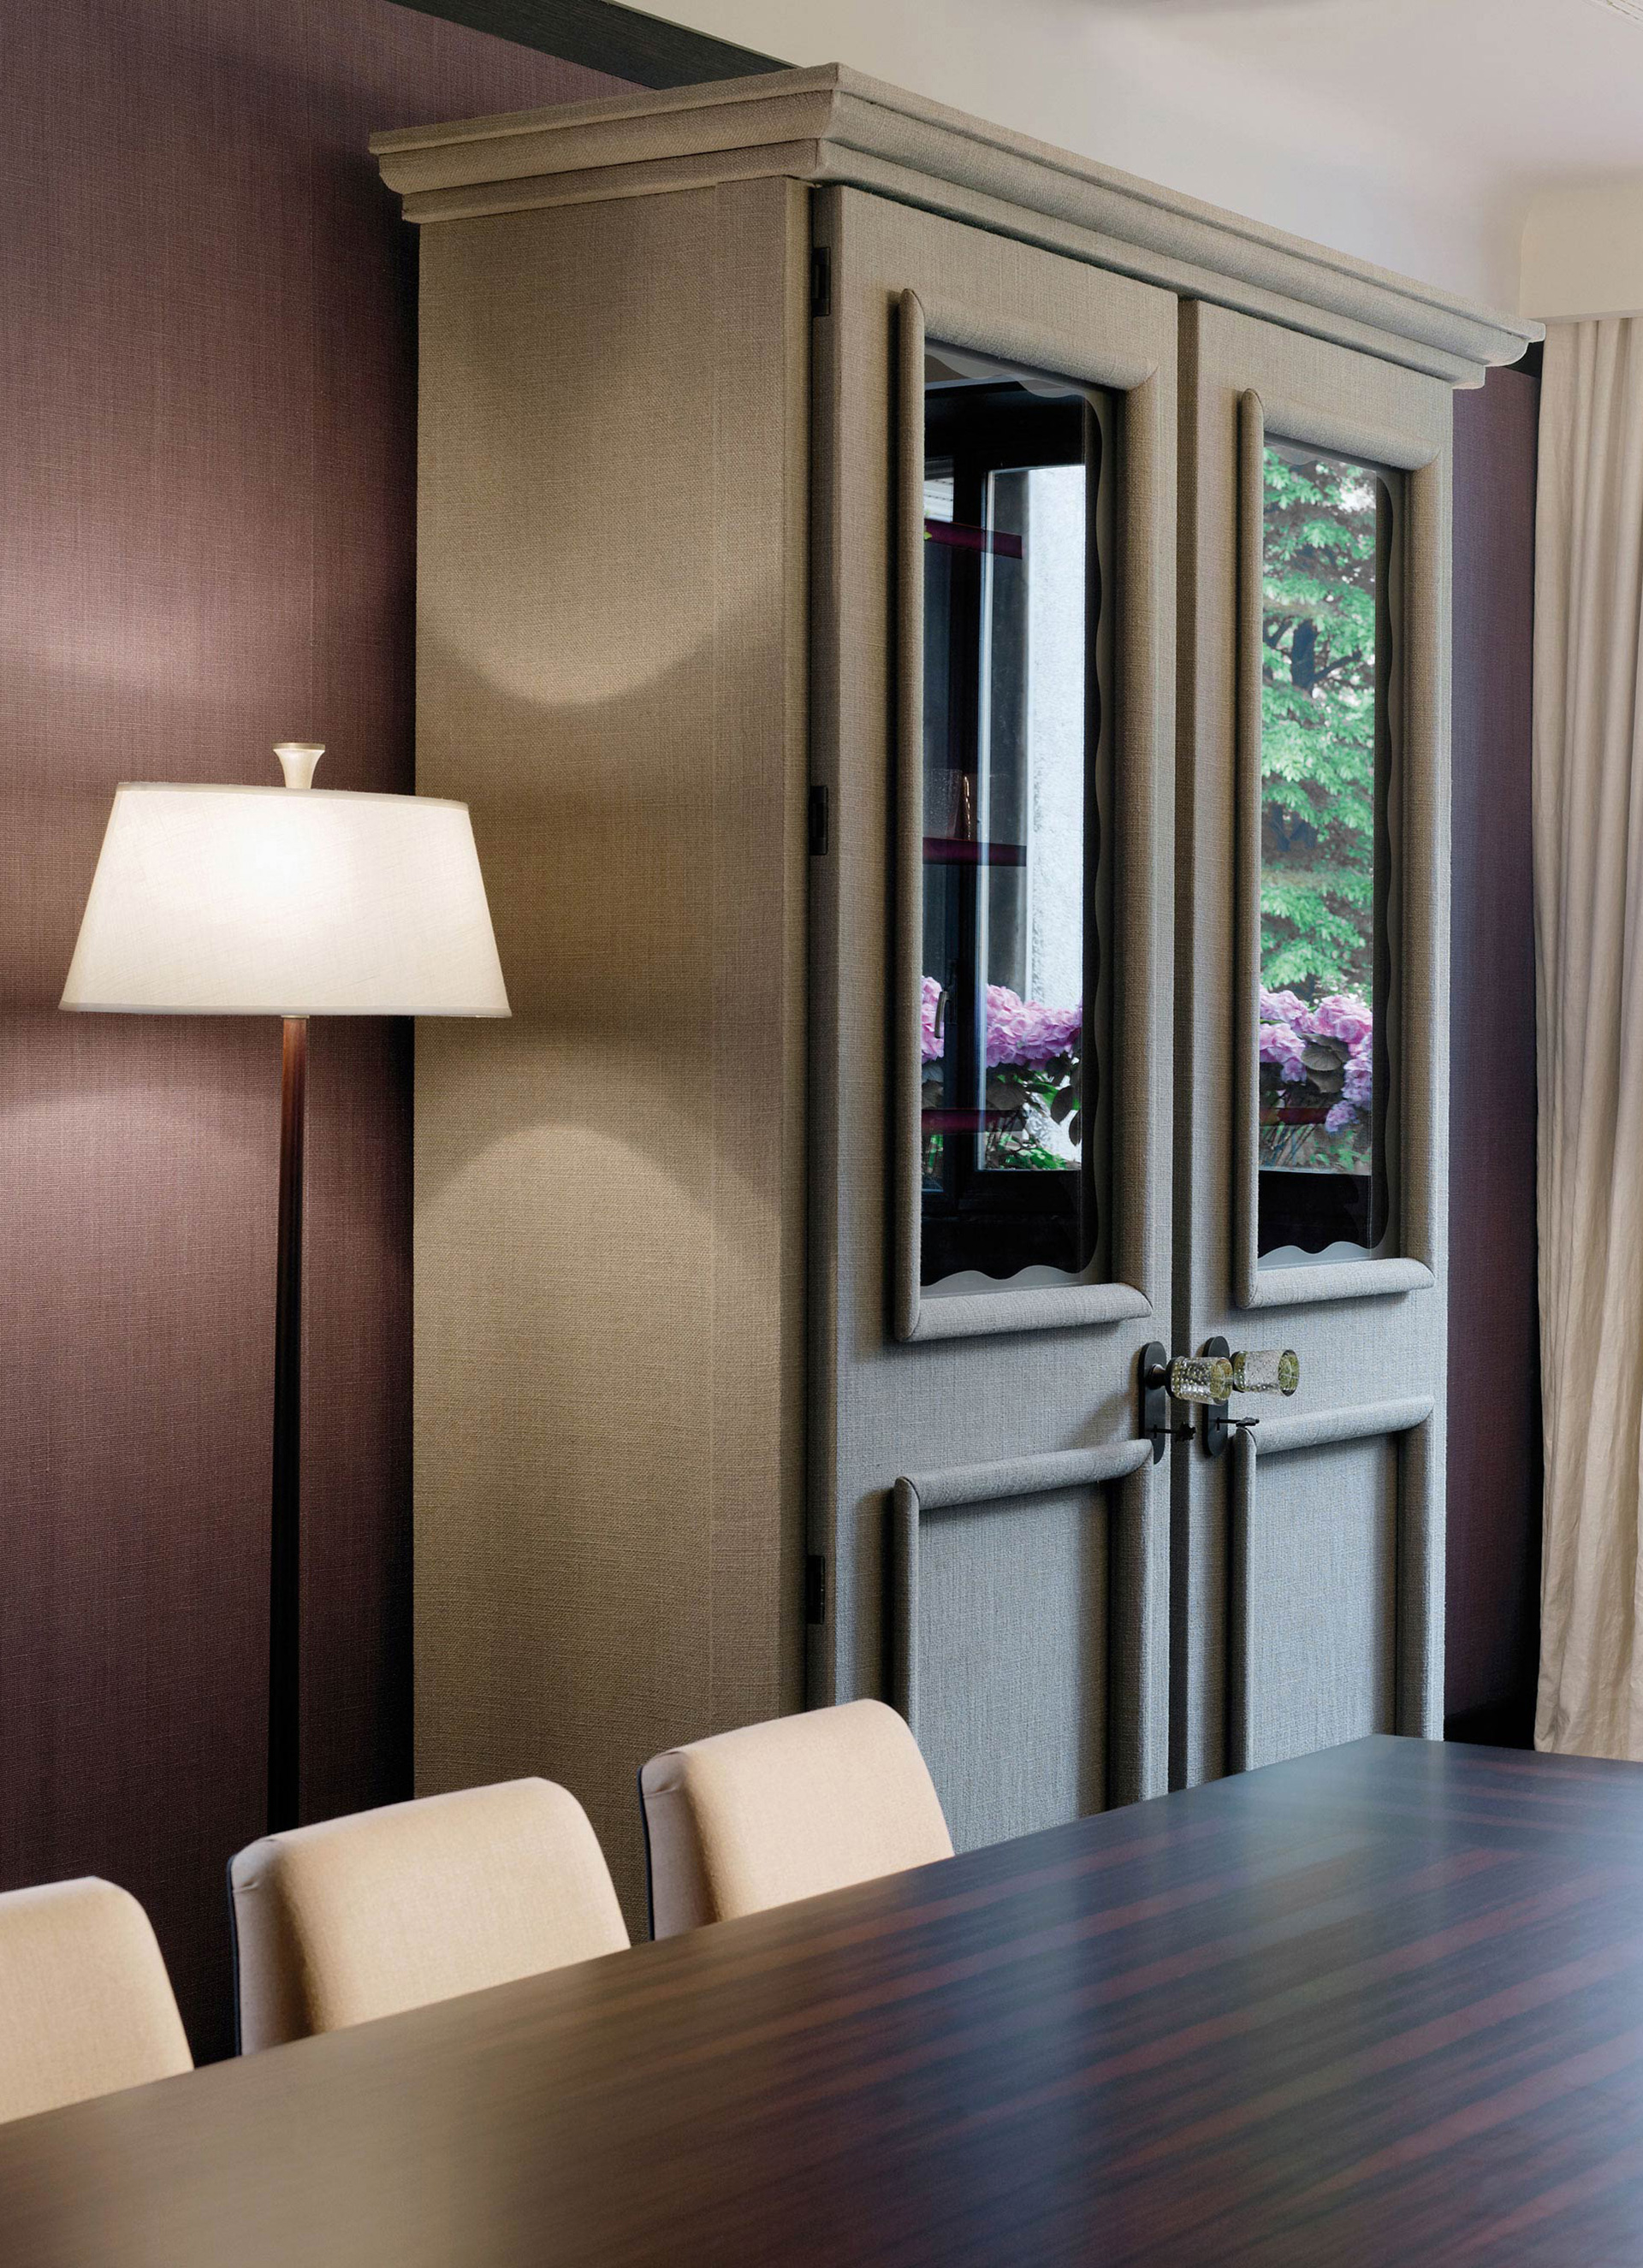 George is a wooden modular wardrobe with two, three or four doors covered in velvet or linen and details in bronze, from the Promemoria's catalogue | Promemoria